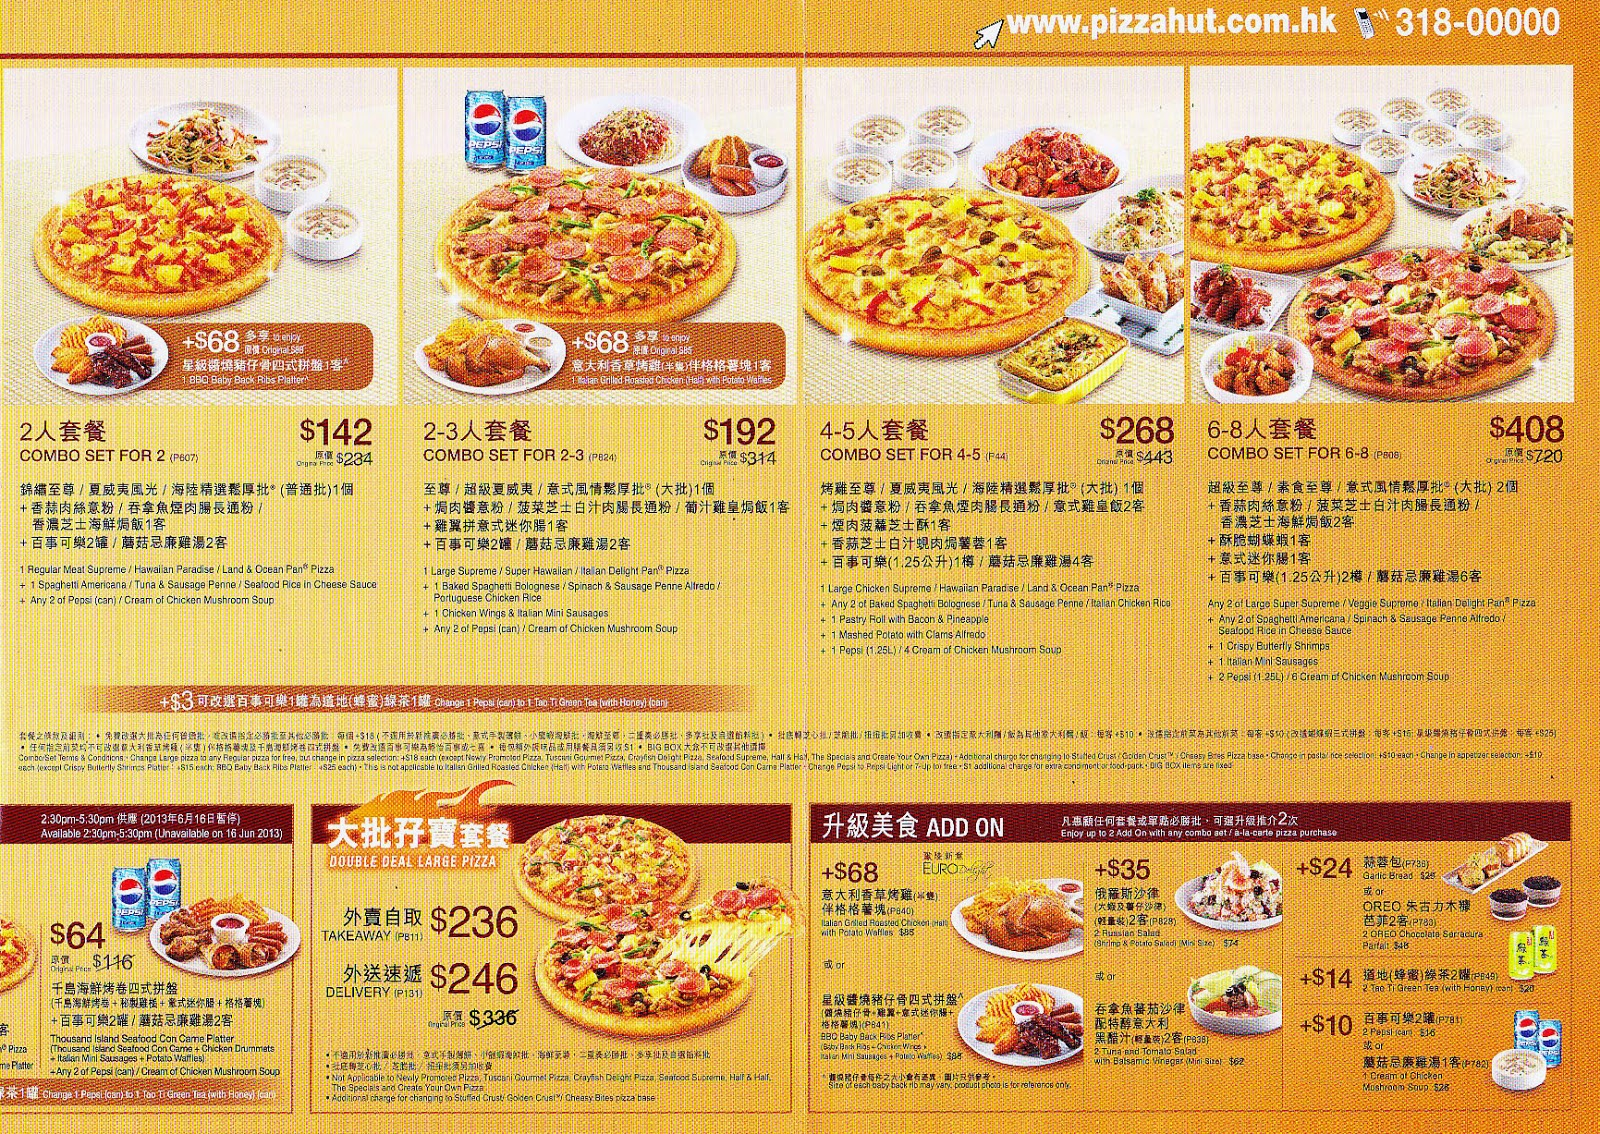 The Pizza Hut menu changes regularly, due to changes in the taste of America customers, and as a result of corporate cost cutting decisions. Also, some items, like salads and pastas, may not be available in certain locations.